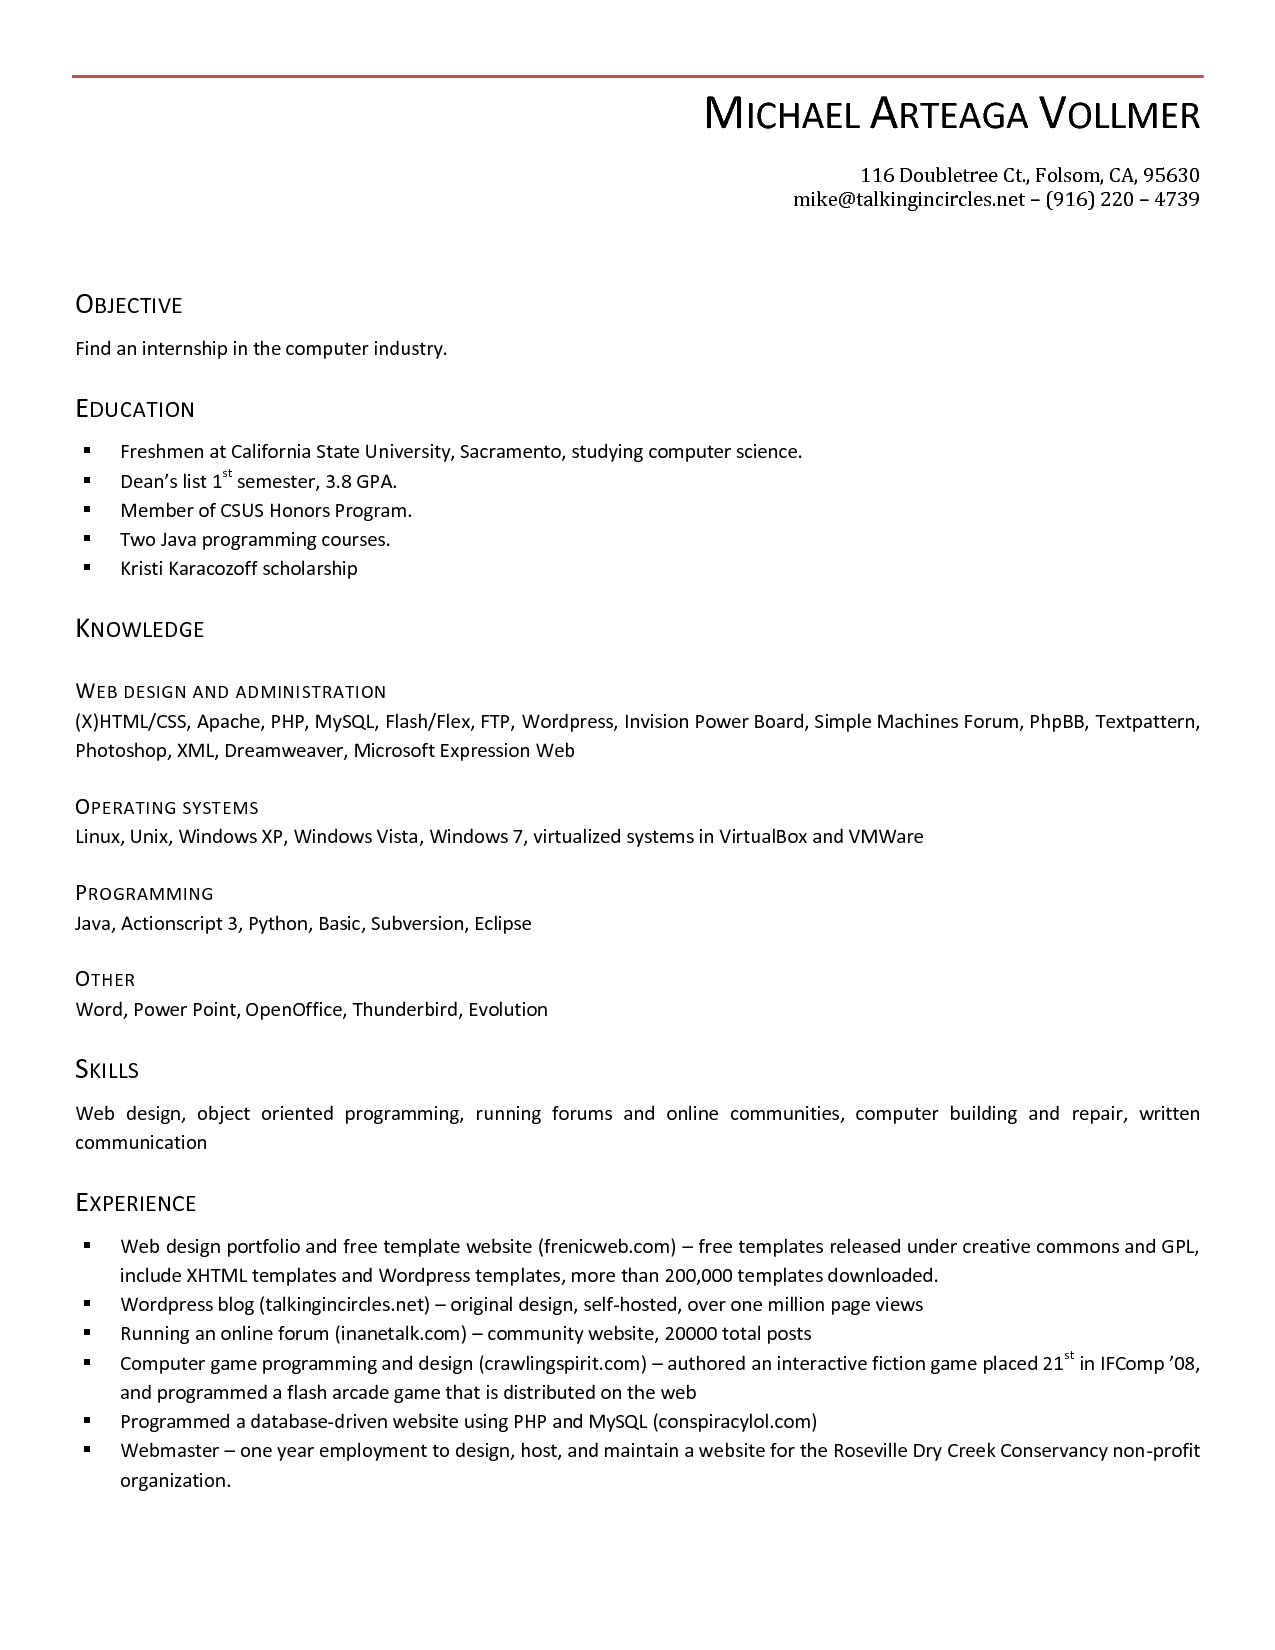 Microsoft Office Templates Resume Unique Resume Templates For Openoffice Hdresume Templates Cover Letter